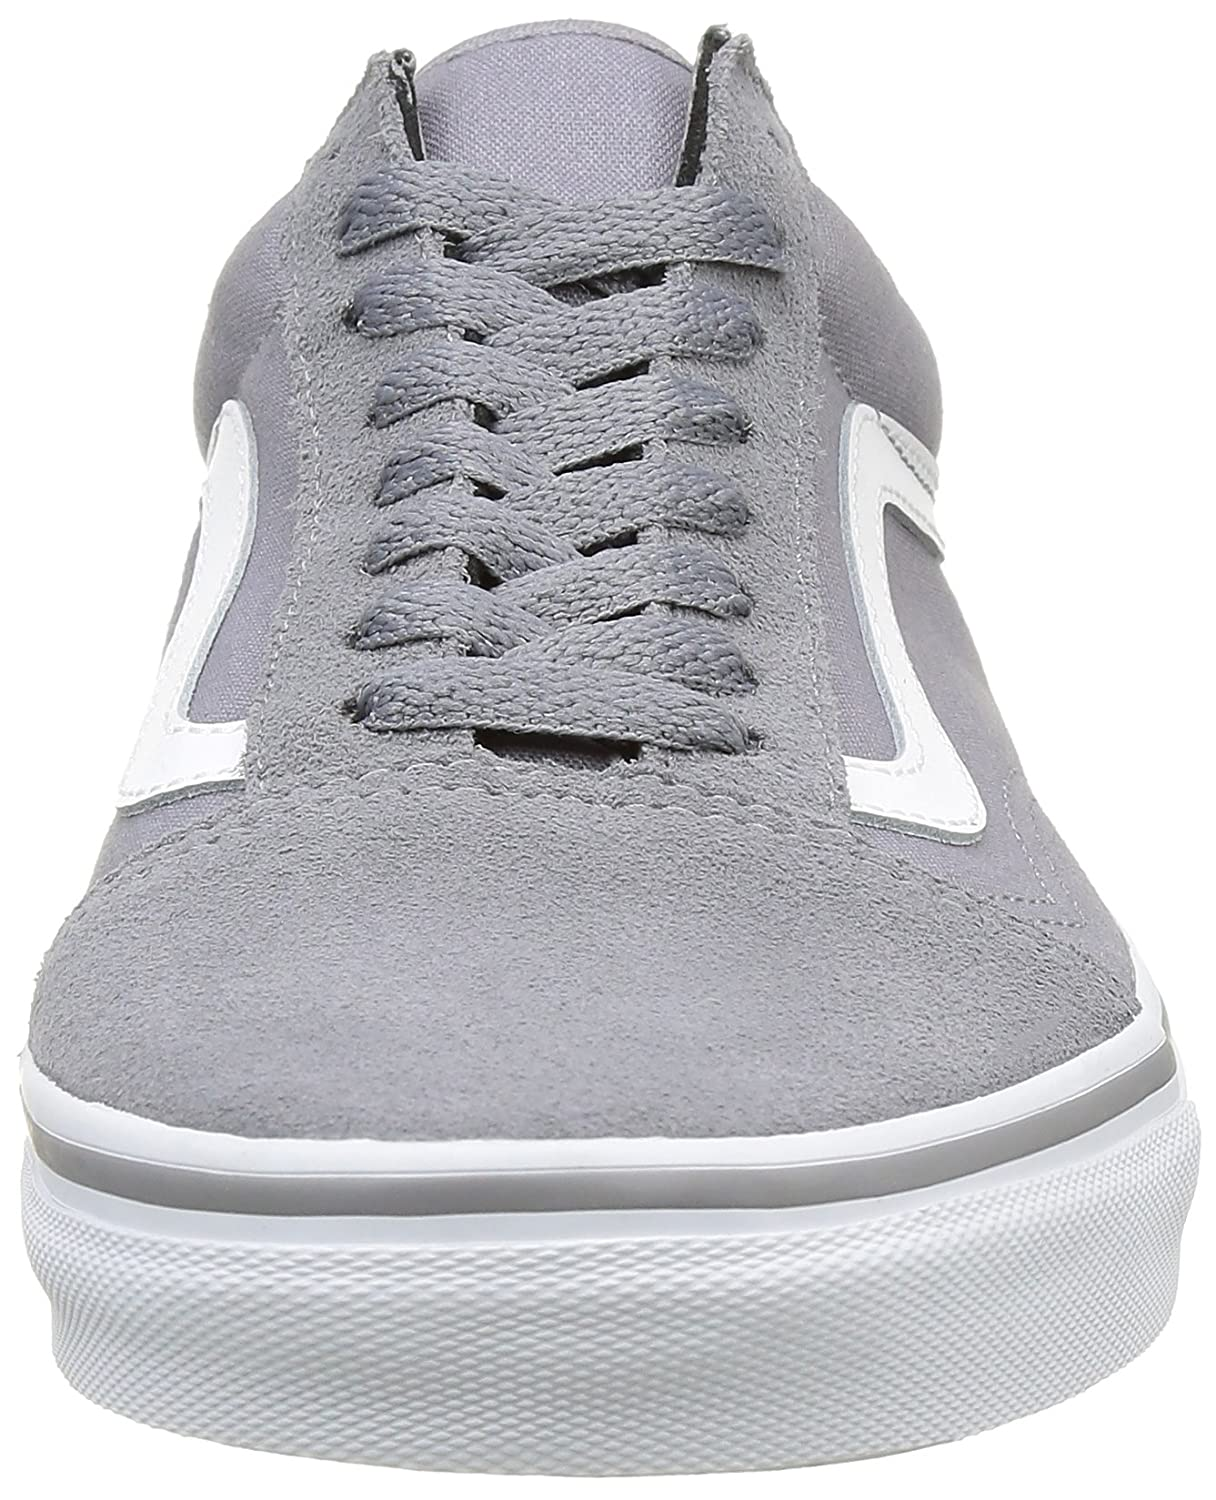 Vans Unisex Old Skool Classic Skate Shoes B01DYS876S 9.5 M US Women / 8 M US Men|(Suede/Canvas) Frost Gray/True White